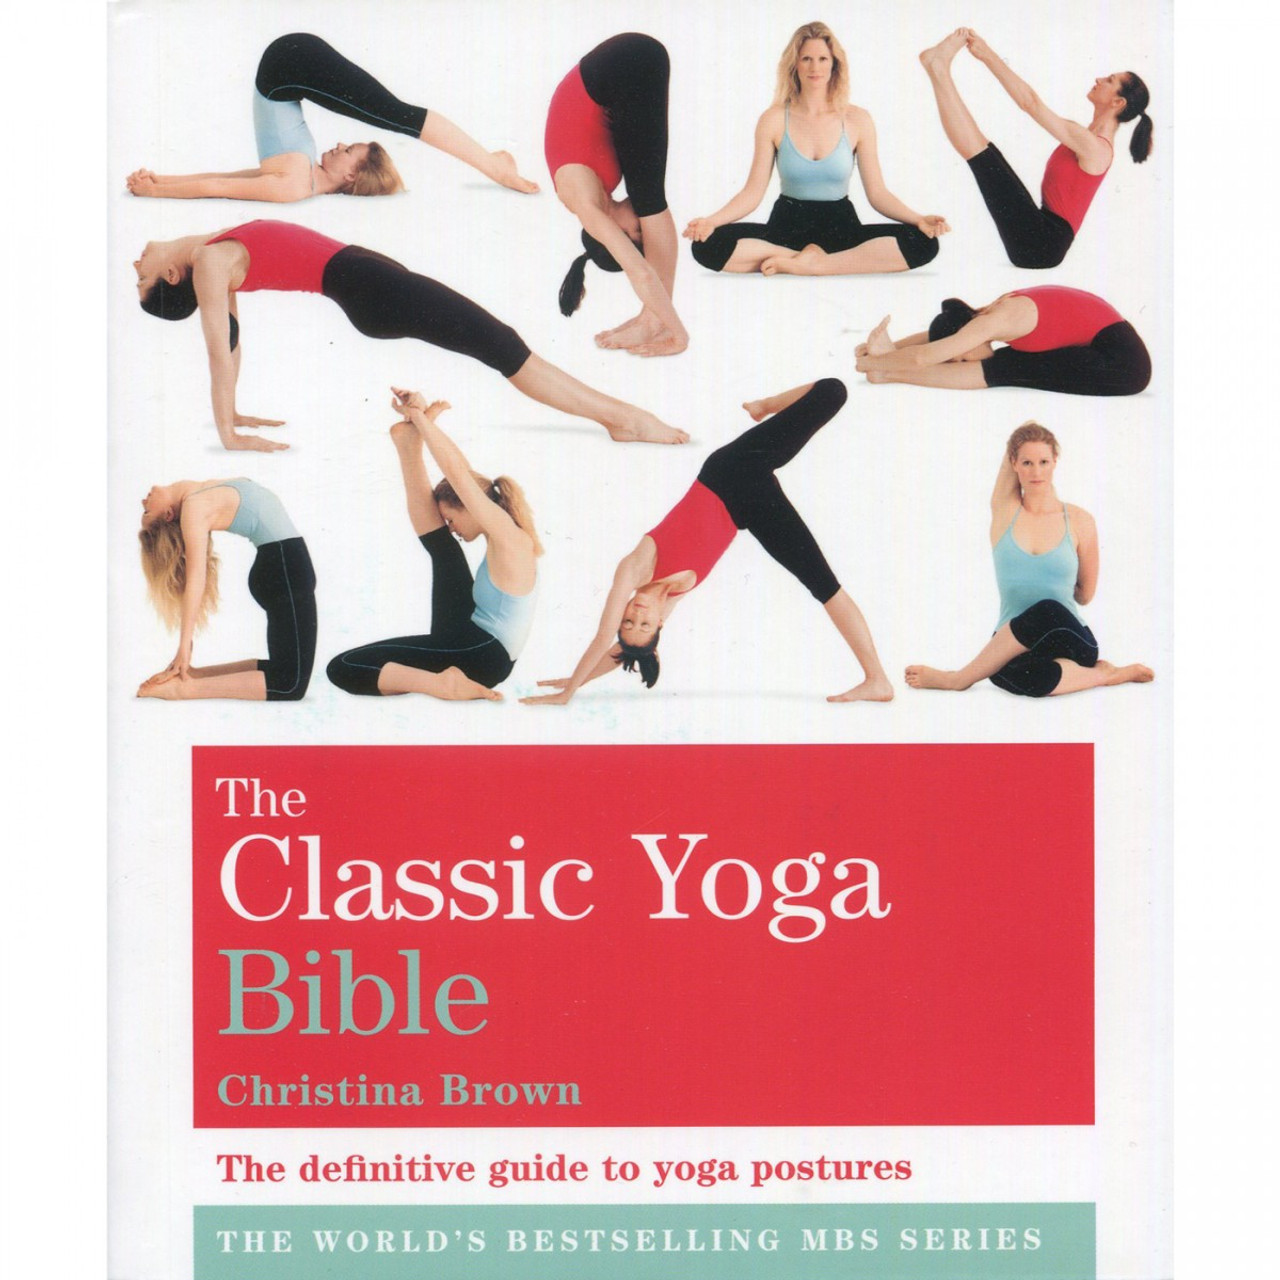 The Classic Yoga Bible by Christina Brown